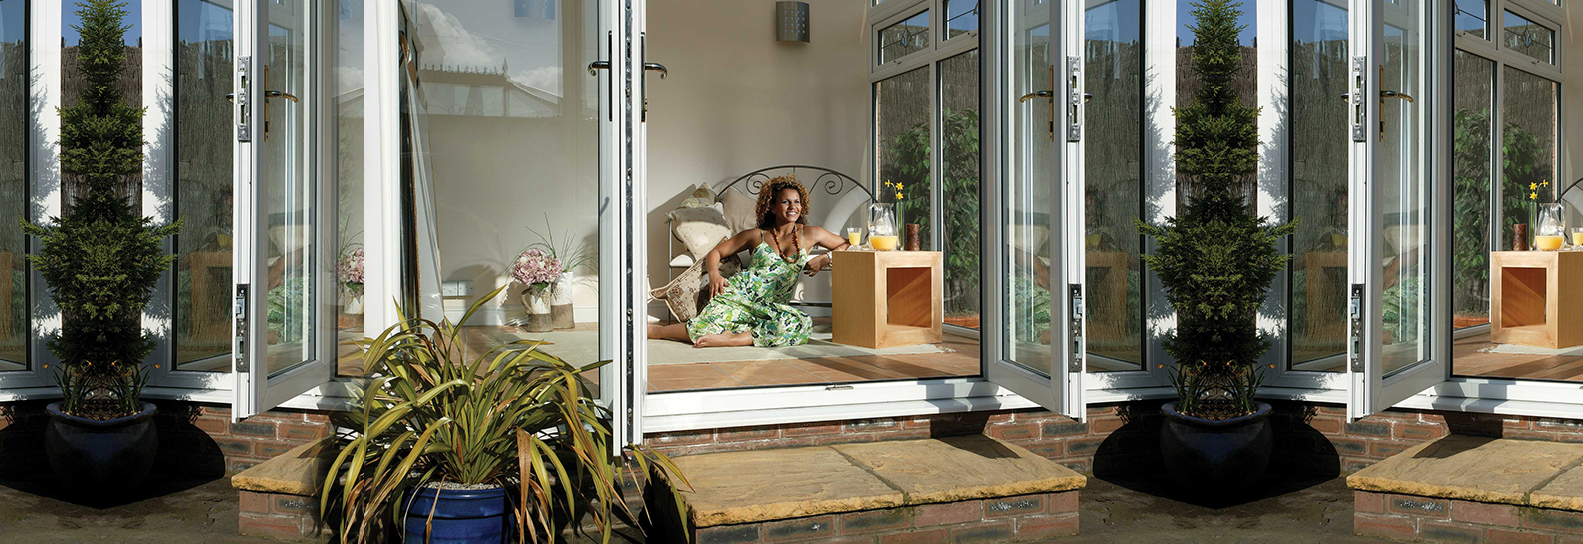 conservatory_french_doors